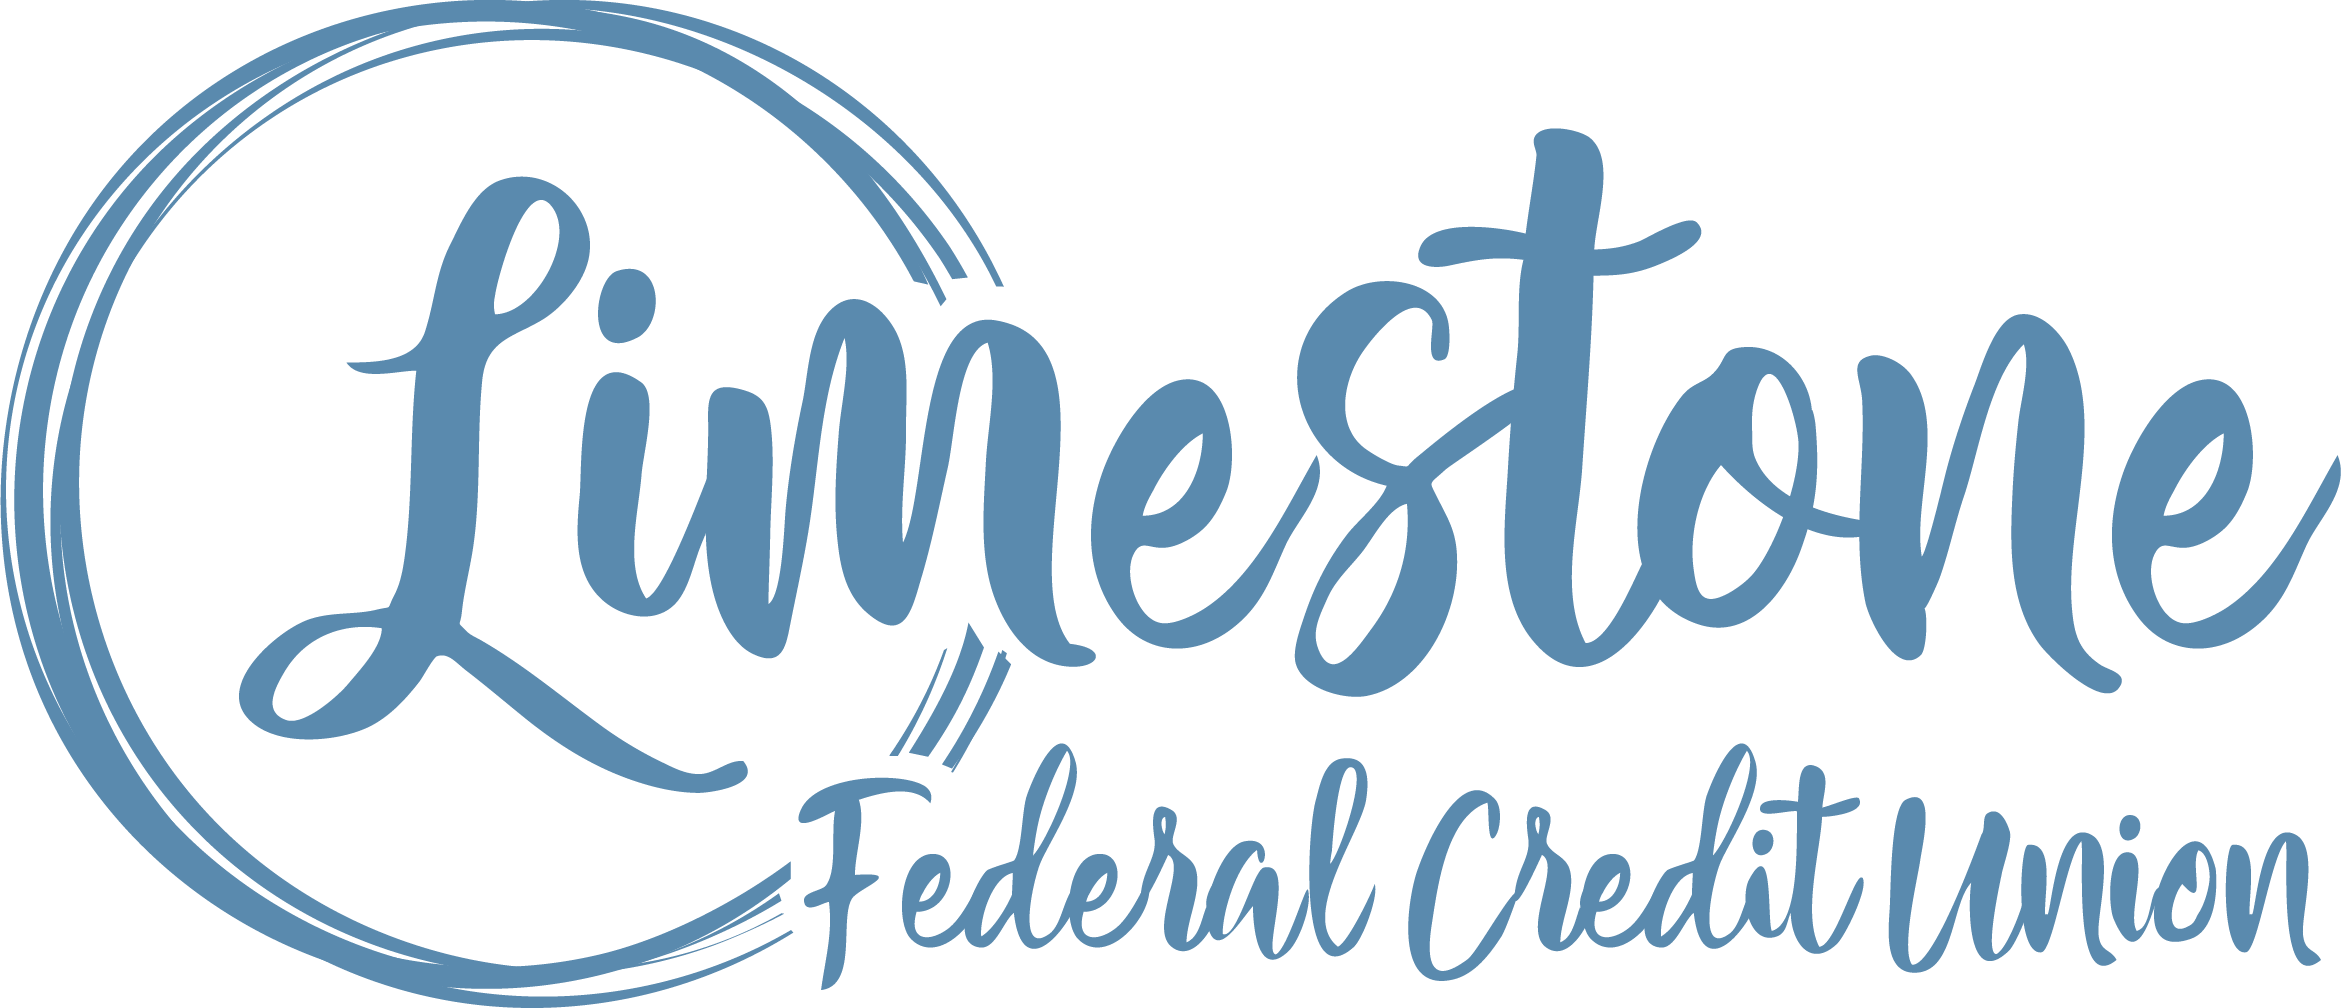 Limestone Federal Credit Union